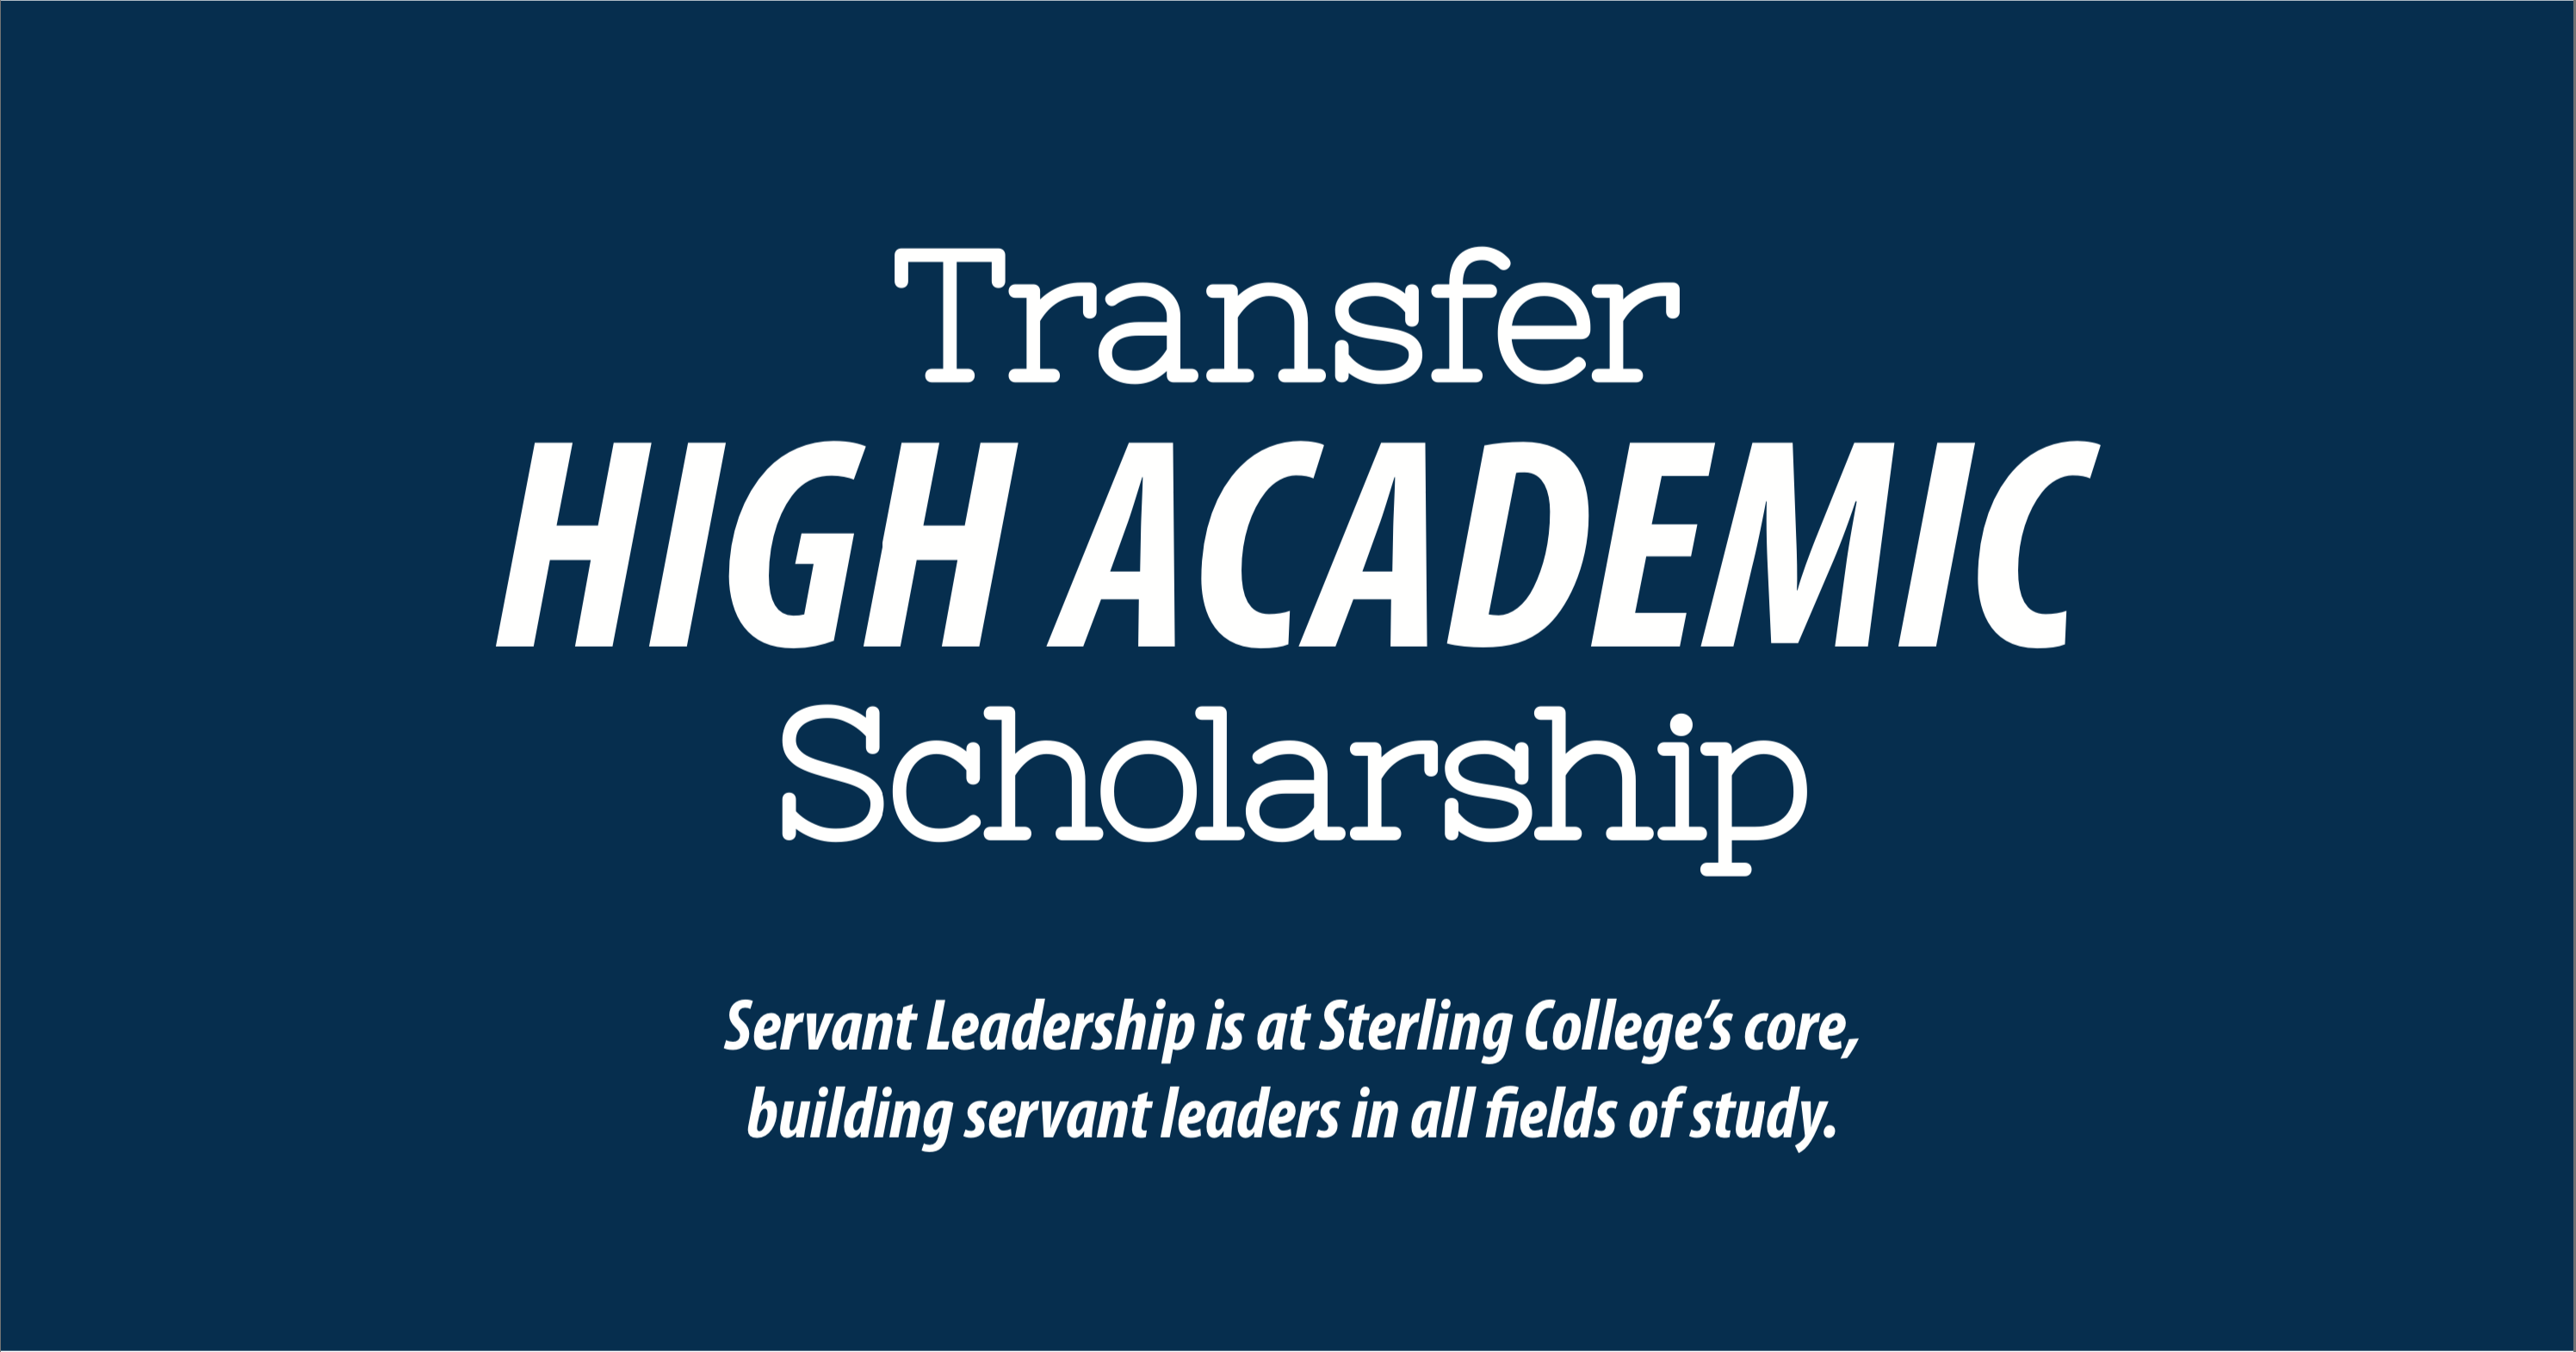 High Academic Transfer Scholarship